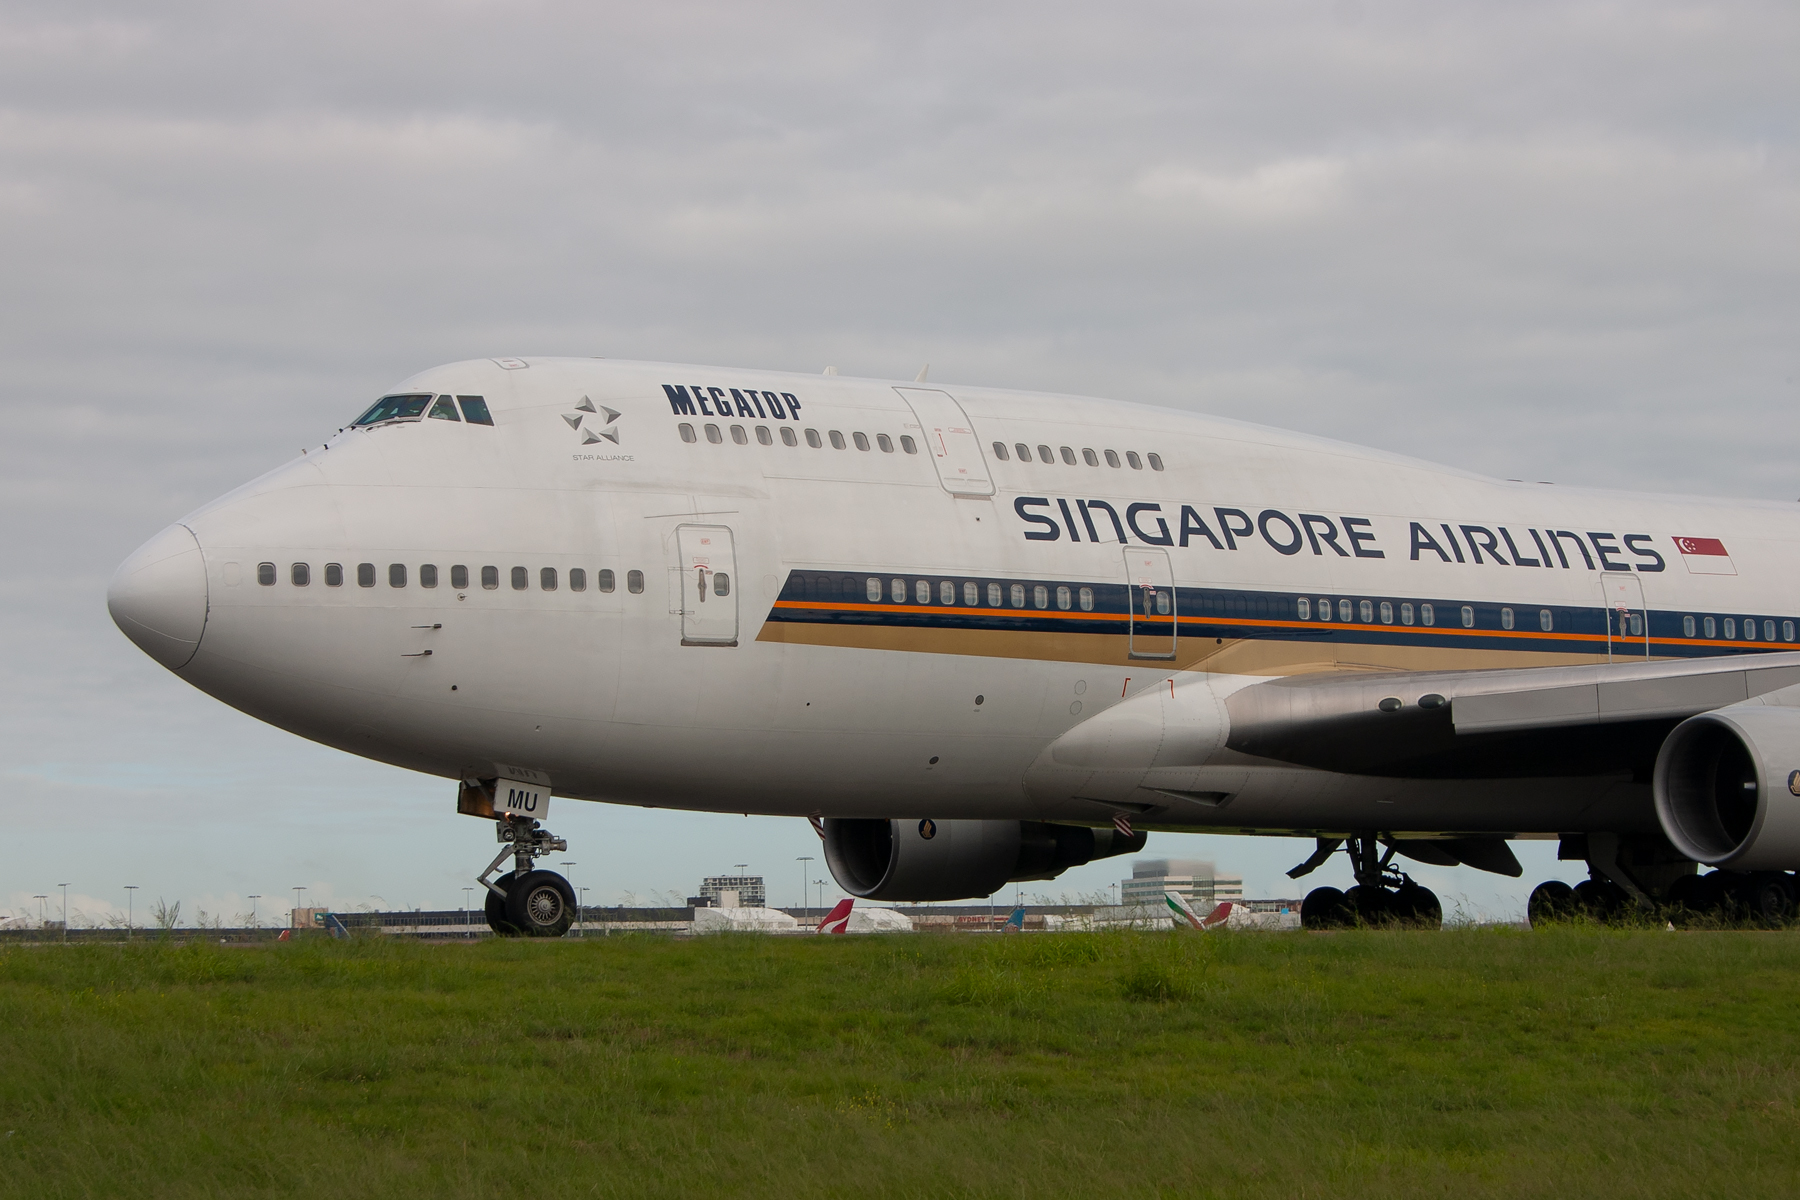 Singapore Airlines Boeing 747-400 9V-SMU at Kingsford Smith